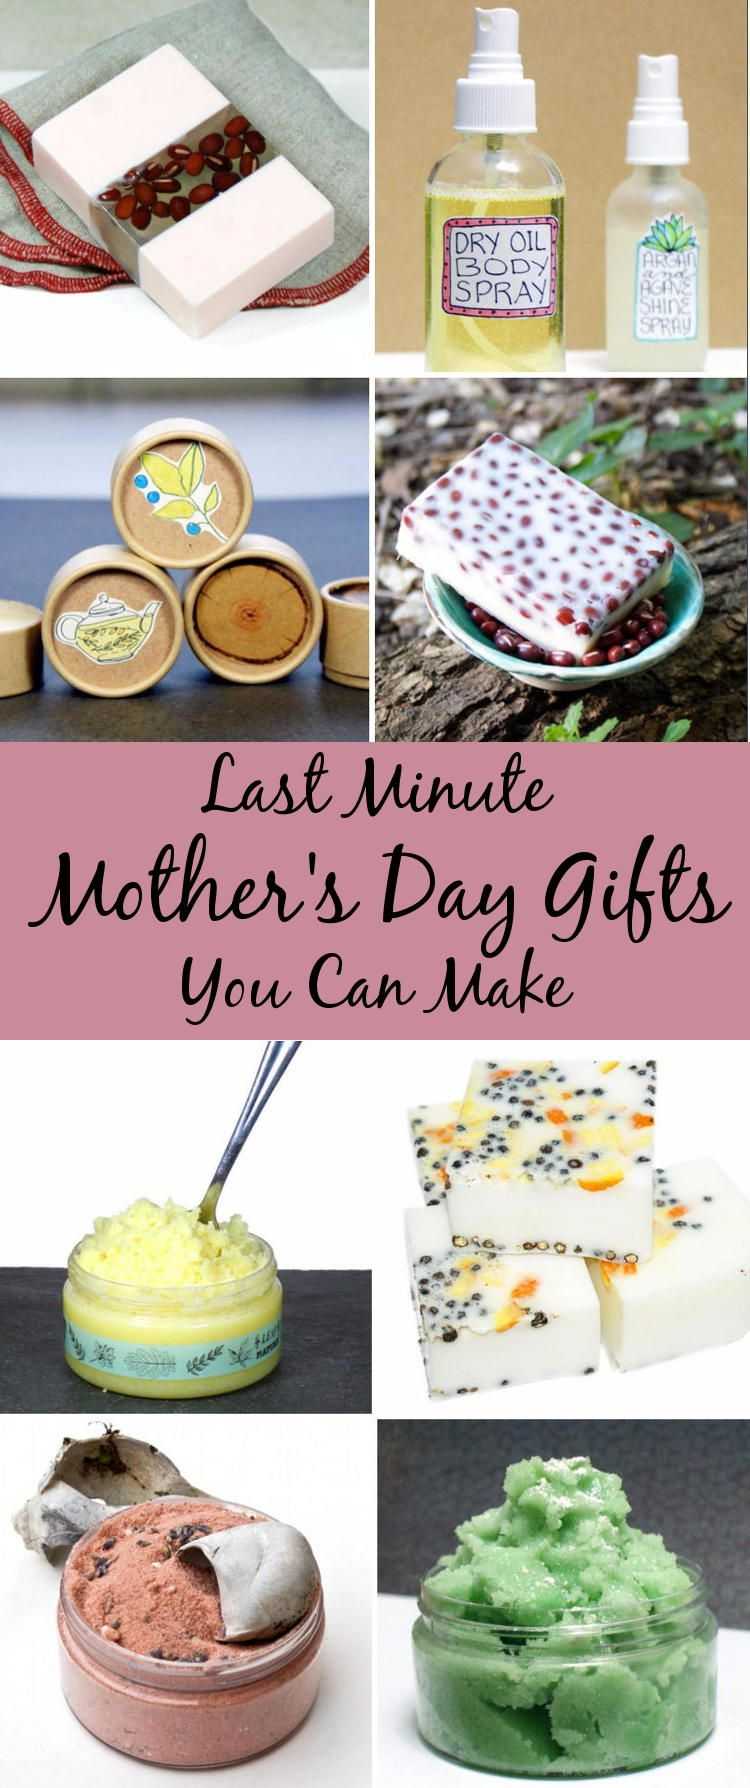 Last Minute Mother's Day Gift Ideas Mothers day gifts